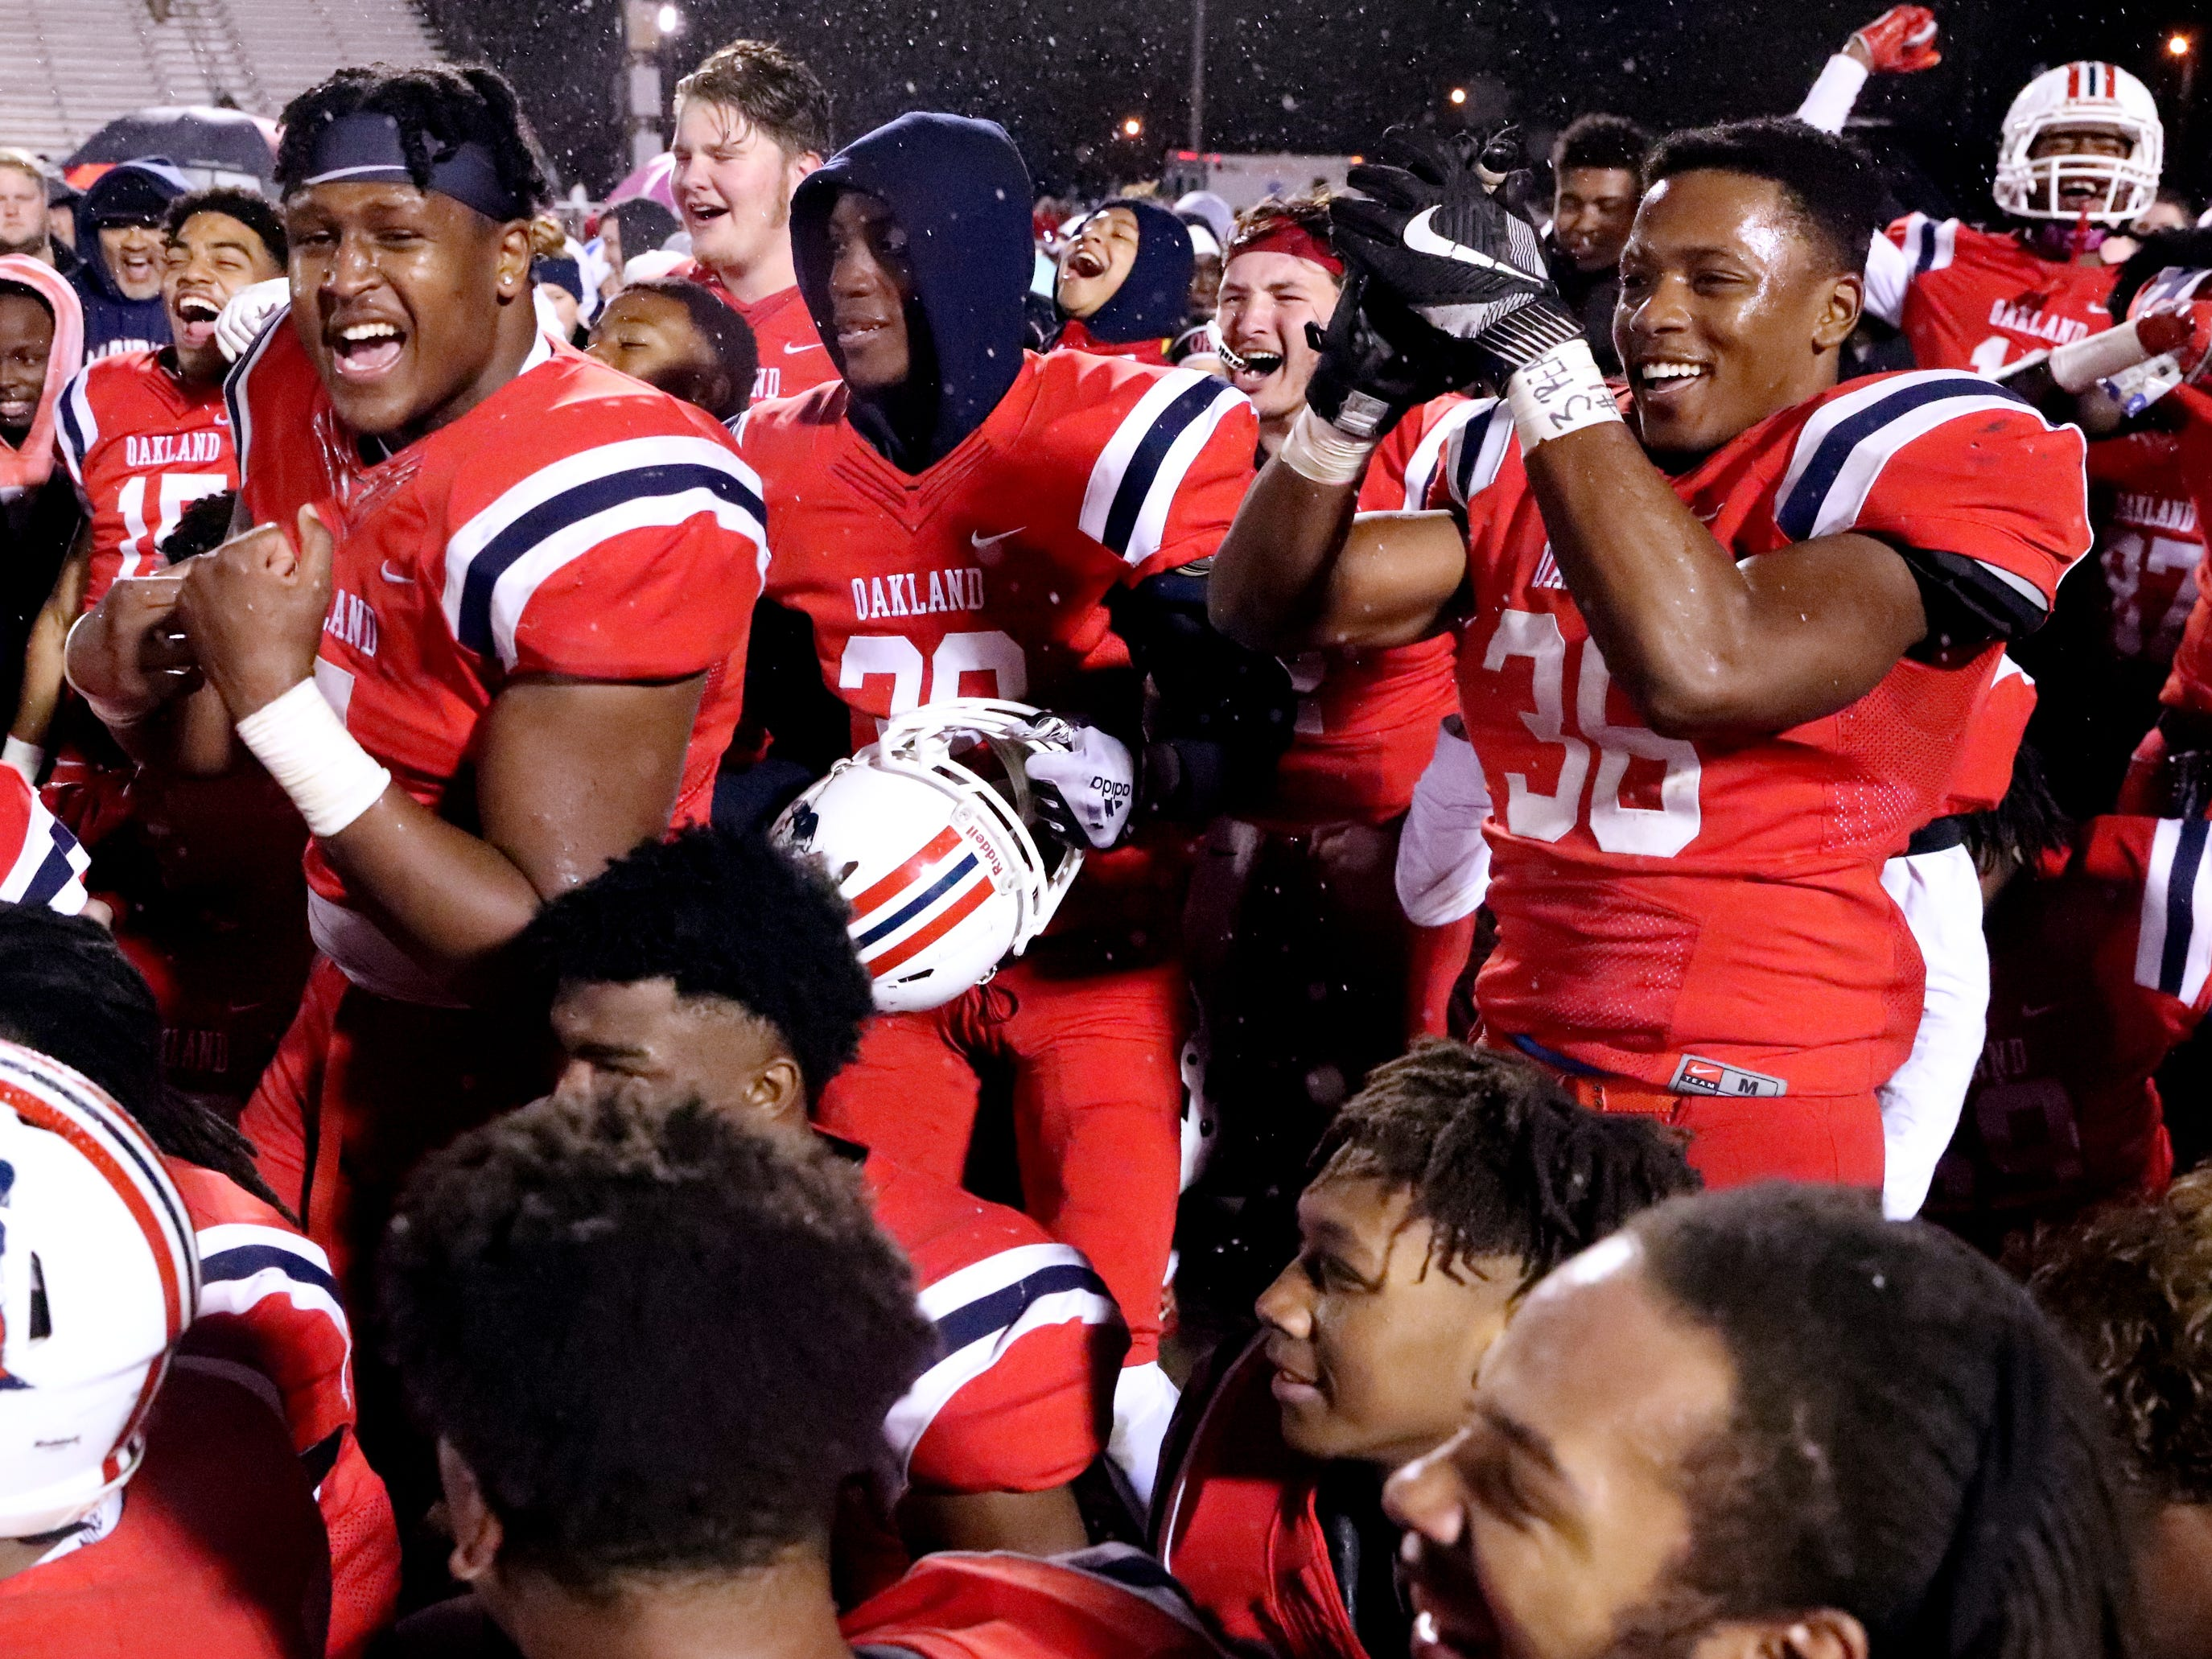 Oakland players celebrates after beating Maryville 38-0 at Oakland in Murfreesboro, on Friday, Aug. 23 2018, during the 6A playoffs and advancing to the State Tournament next week.